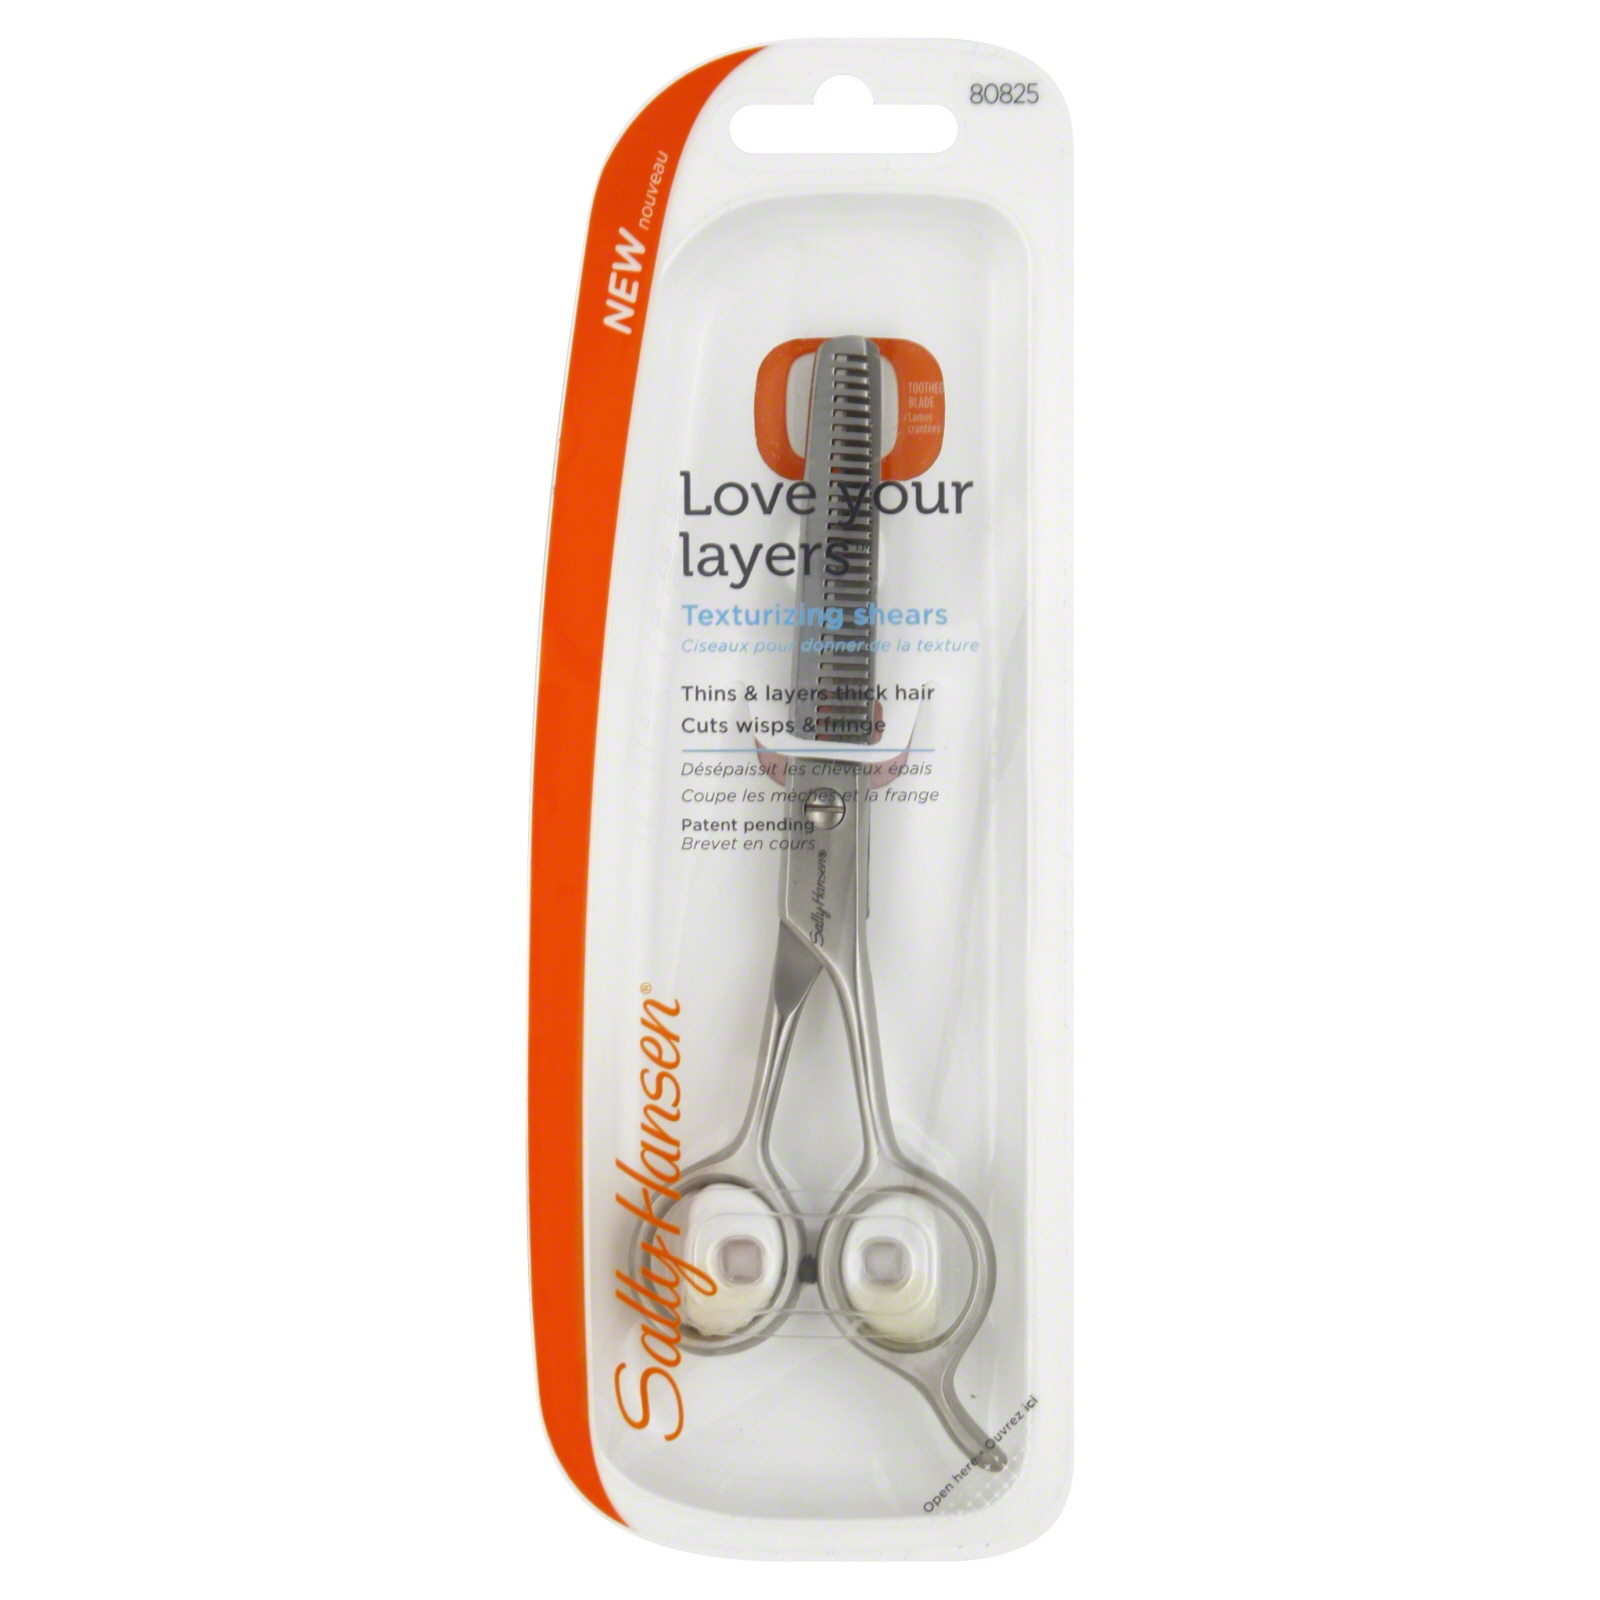 Sally Hansen Shears Texturizing Love Your Layers 1 pair